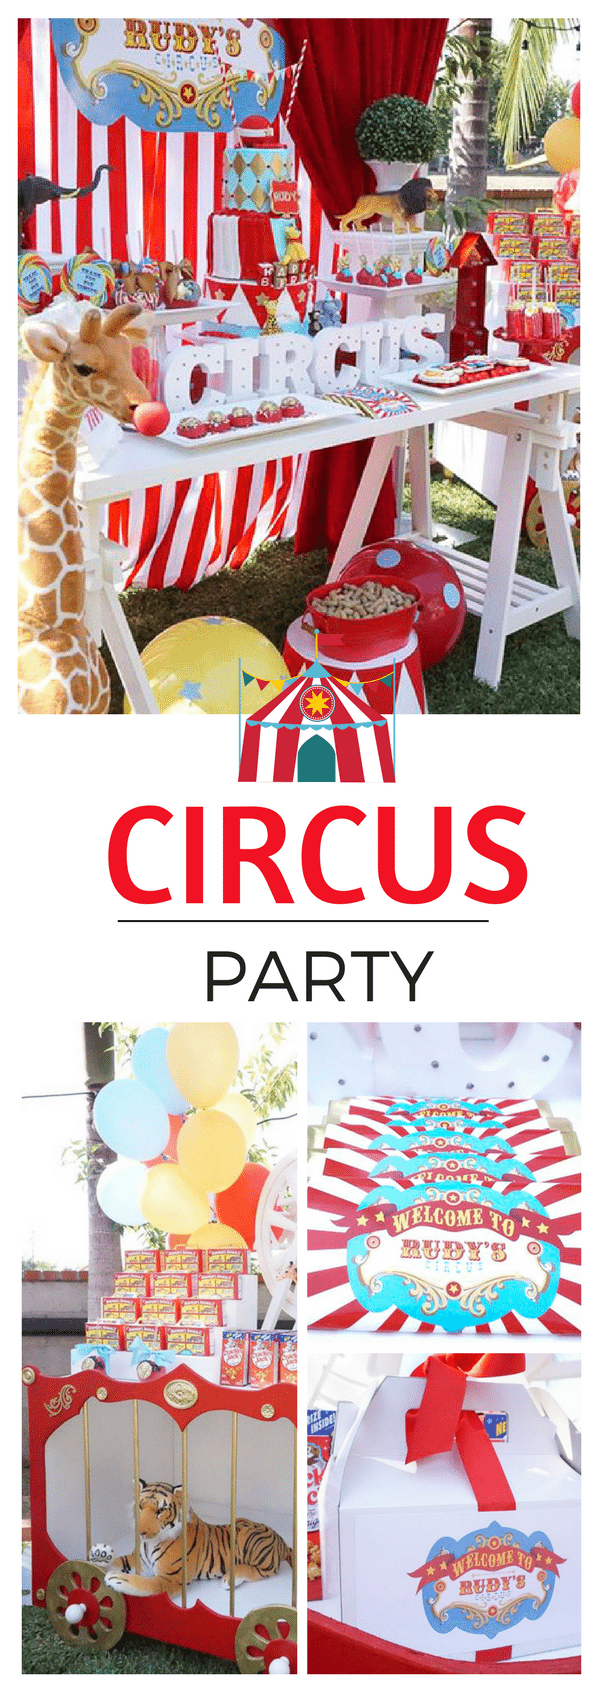 This circus party has a three tiered cake, lions cage and big top colors. This carnival has great desserts and lots of themed ideas for any birthday party.